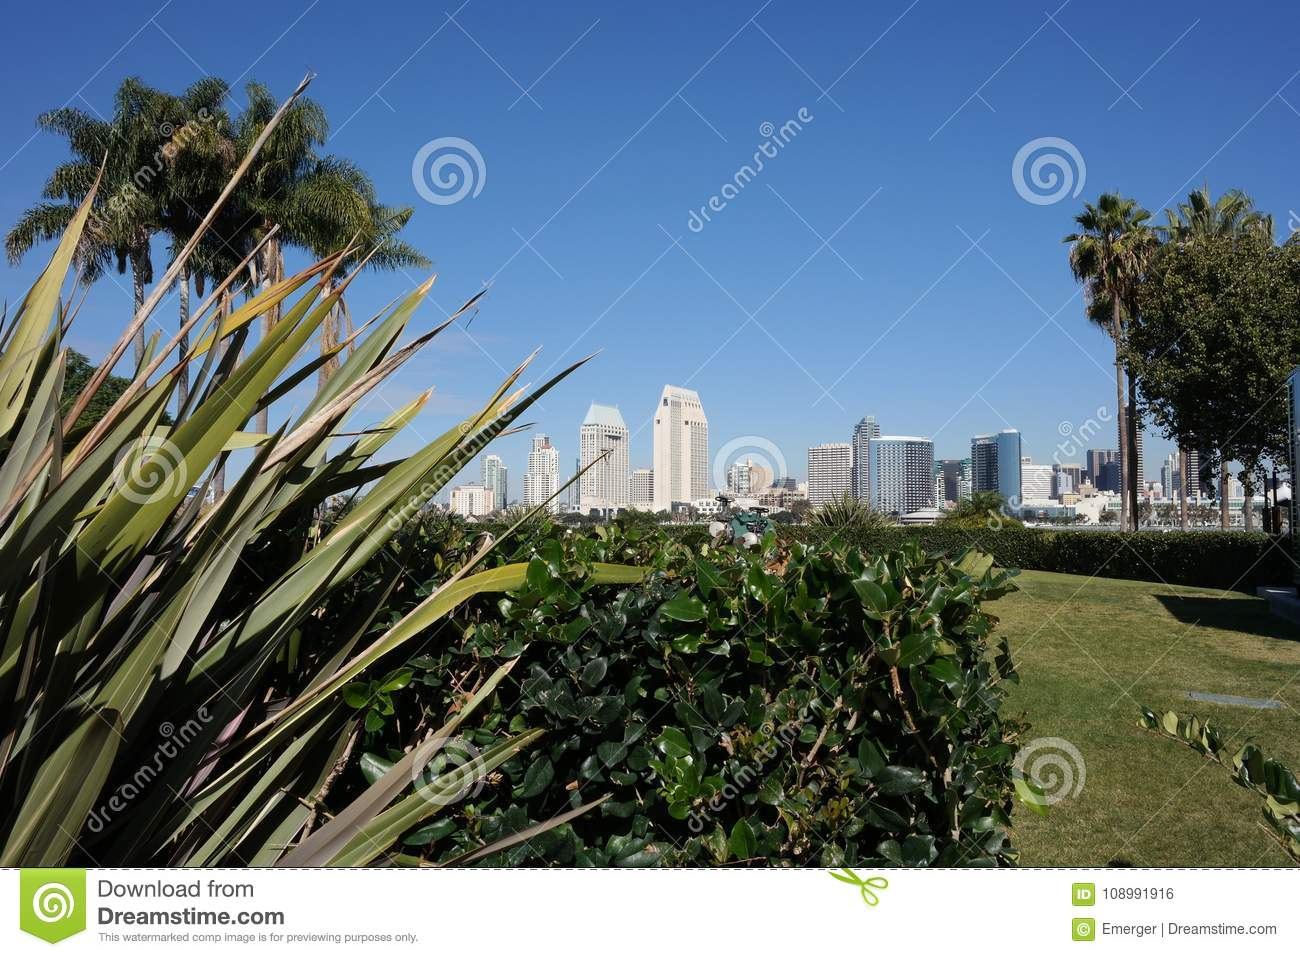 A Lush Park With Lawn And Palm Trees From Coronado Island At The Landing  With The San Diego Skyline In The Background.